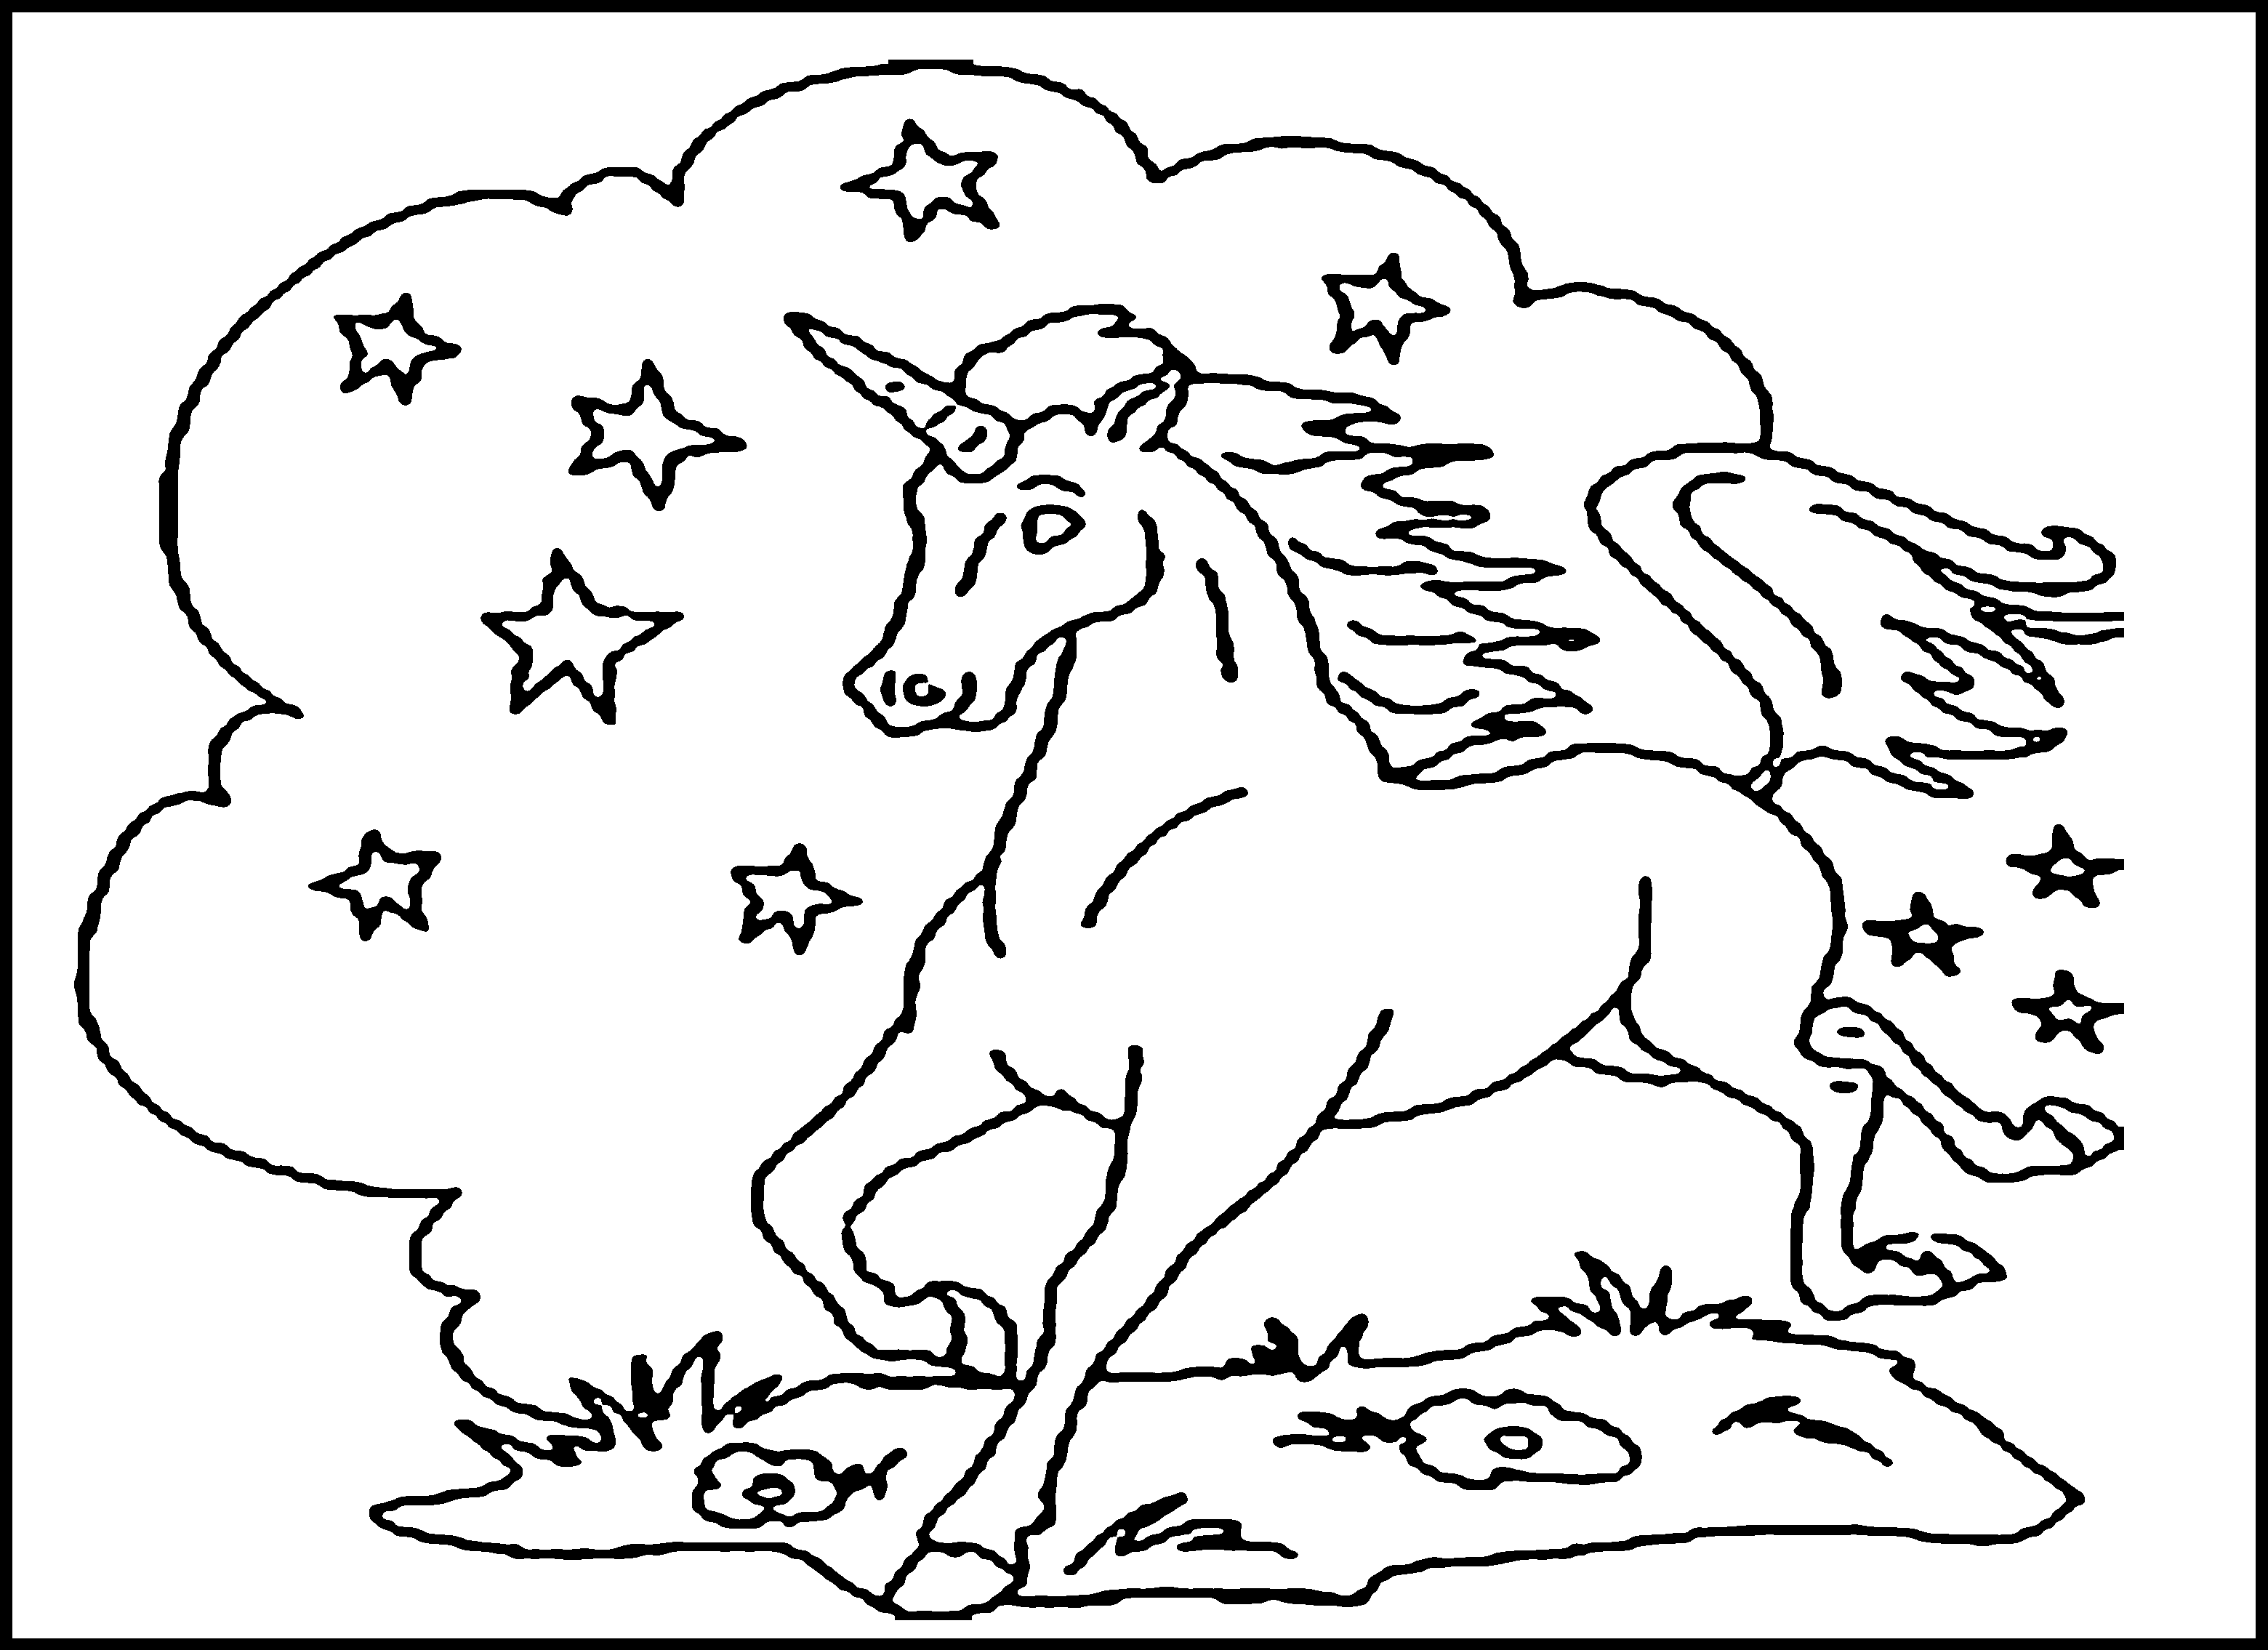 unicorn printable coloring pages - Printable Color